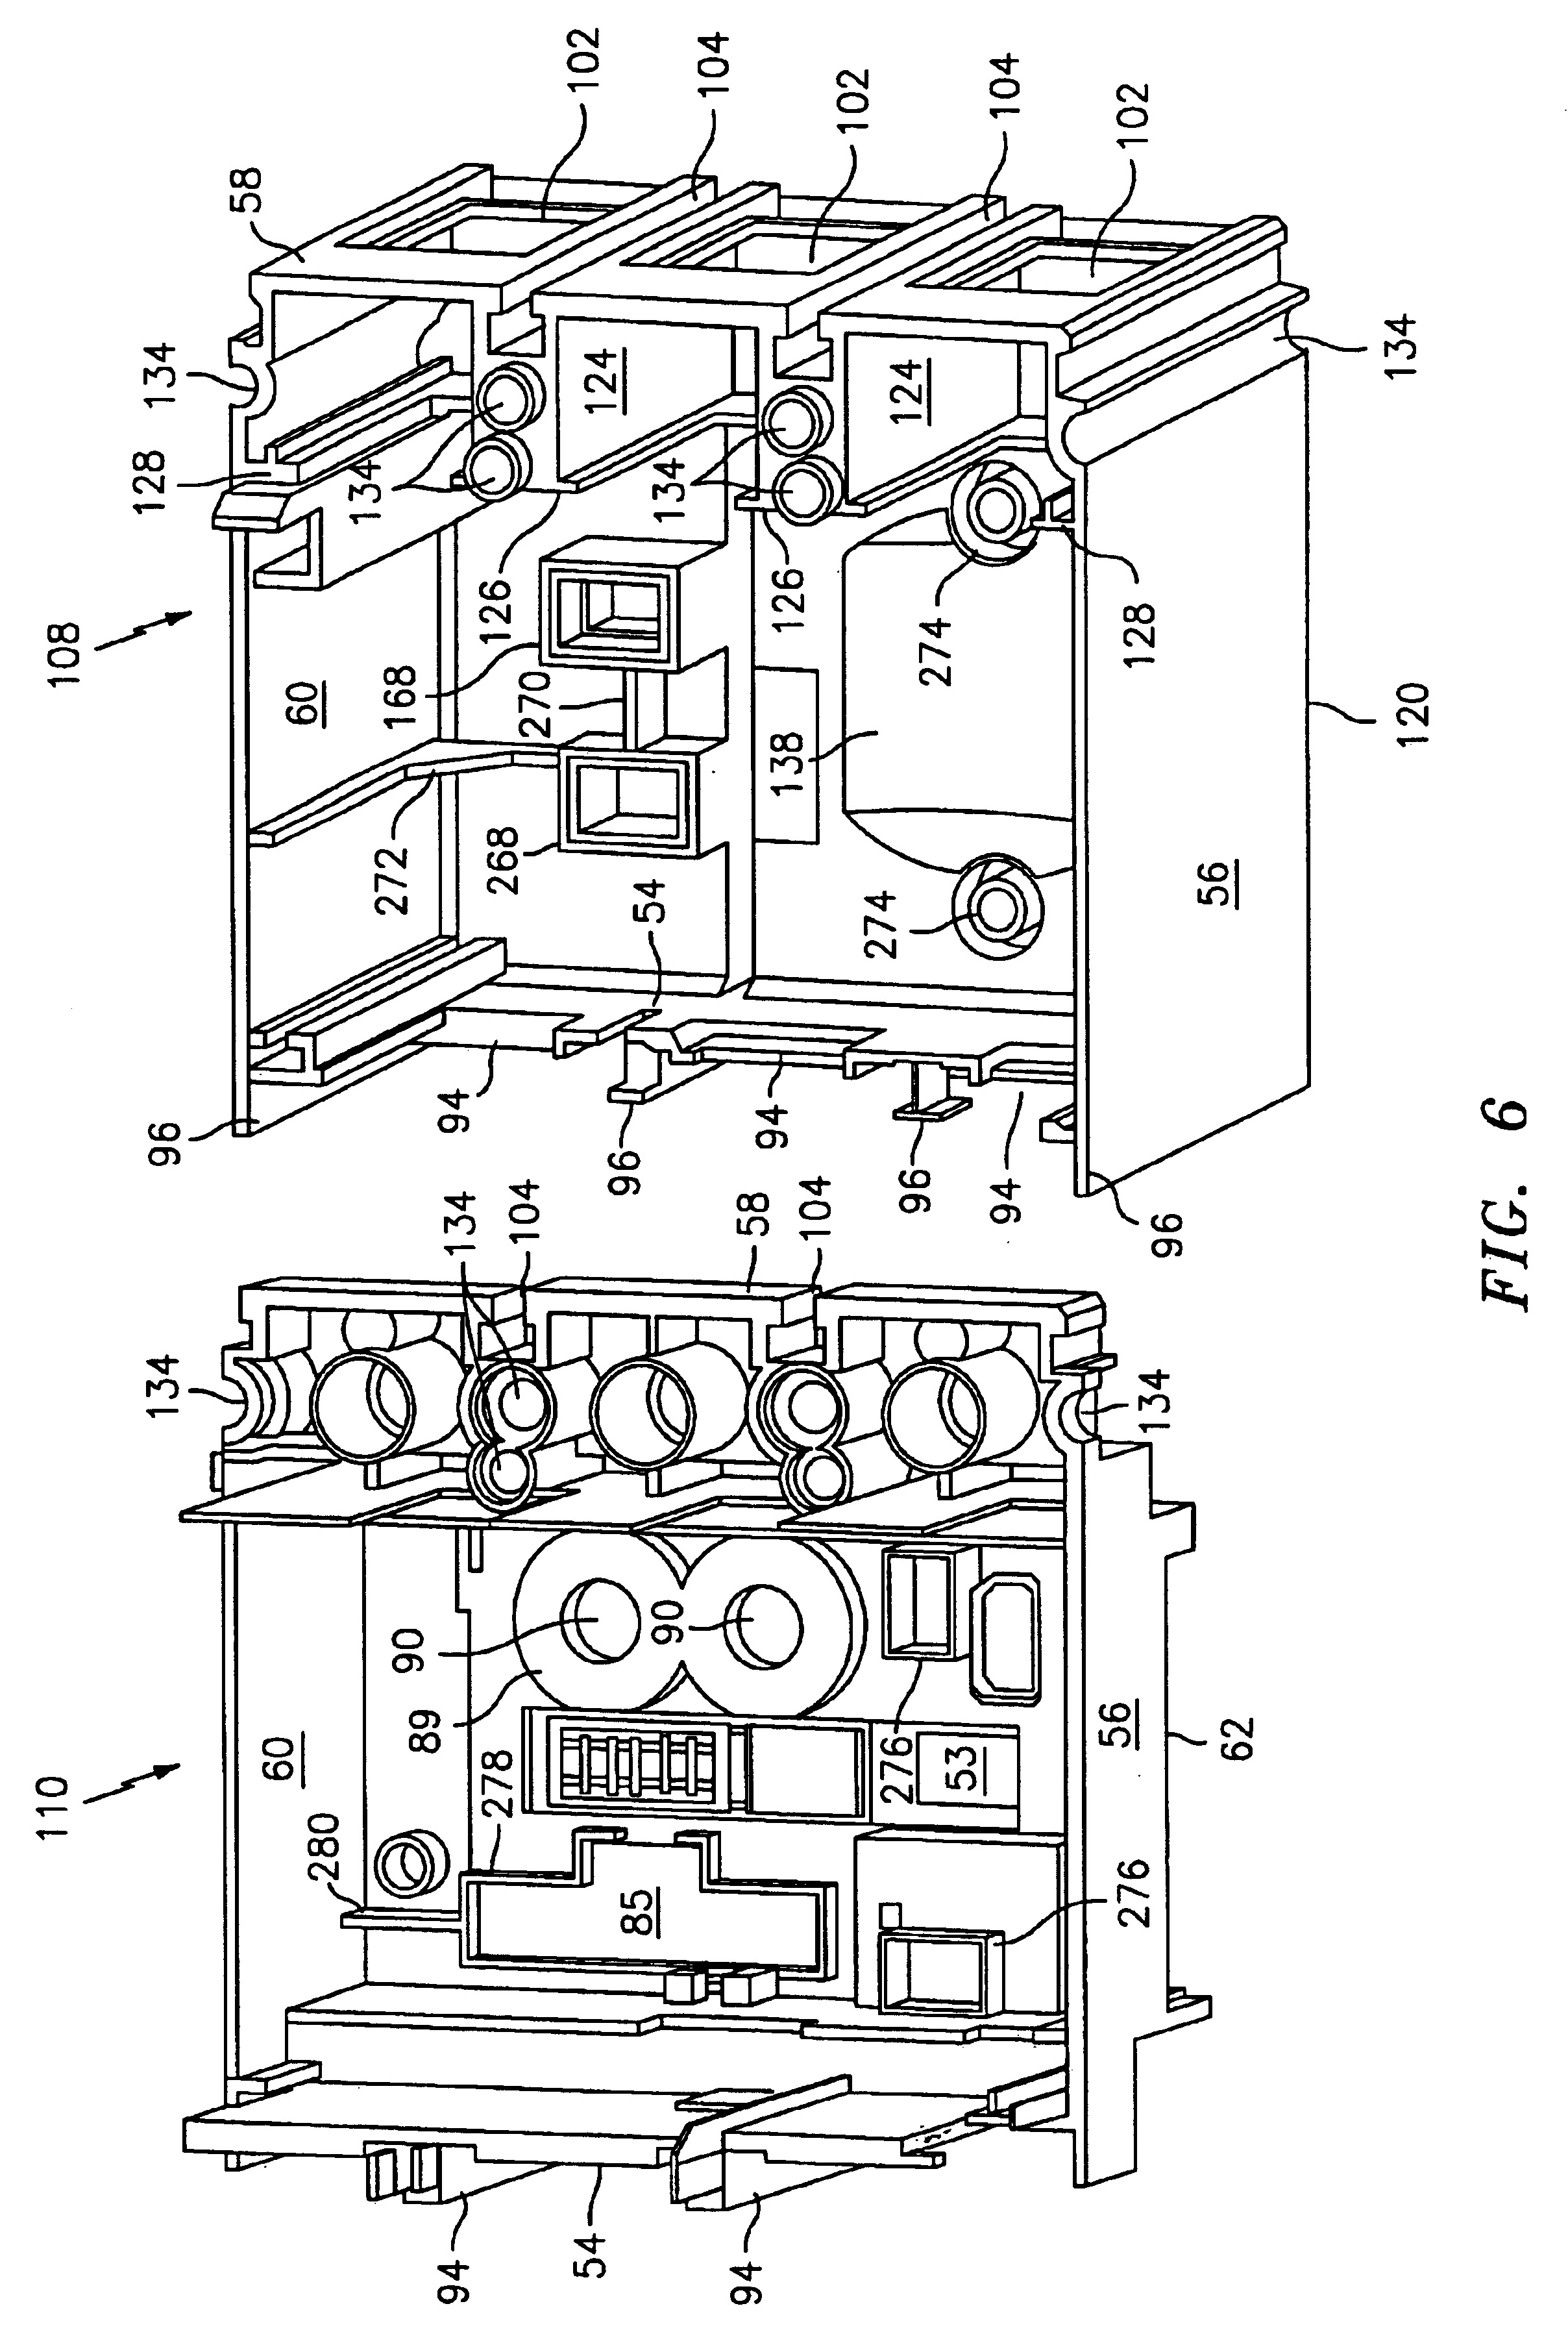 patent us6784770 - earth leakage detection device